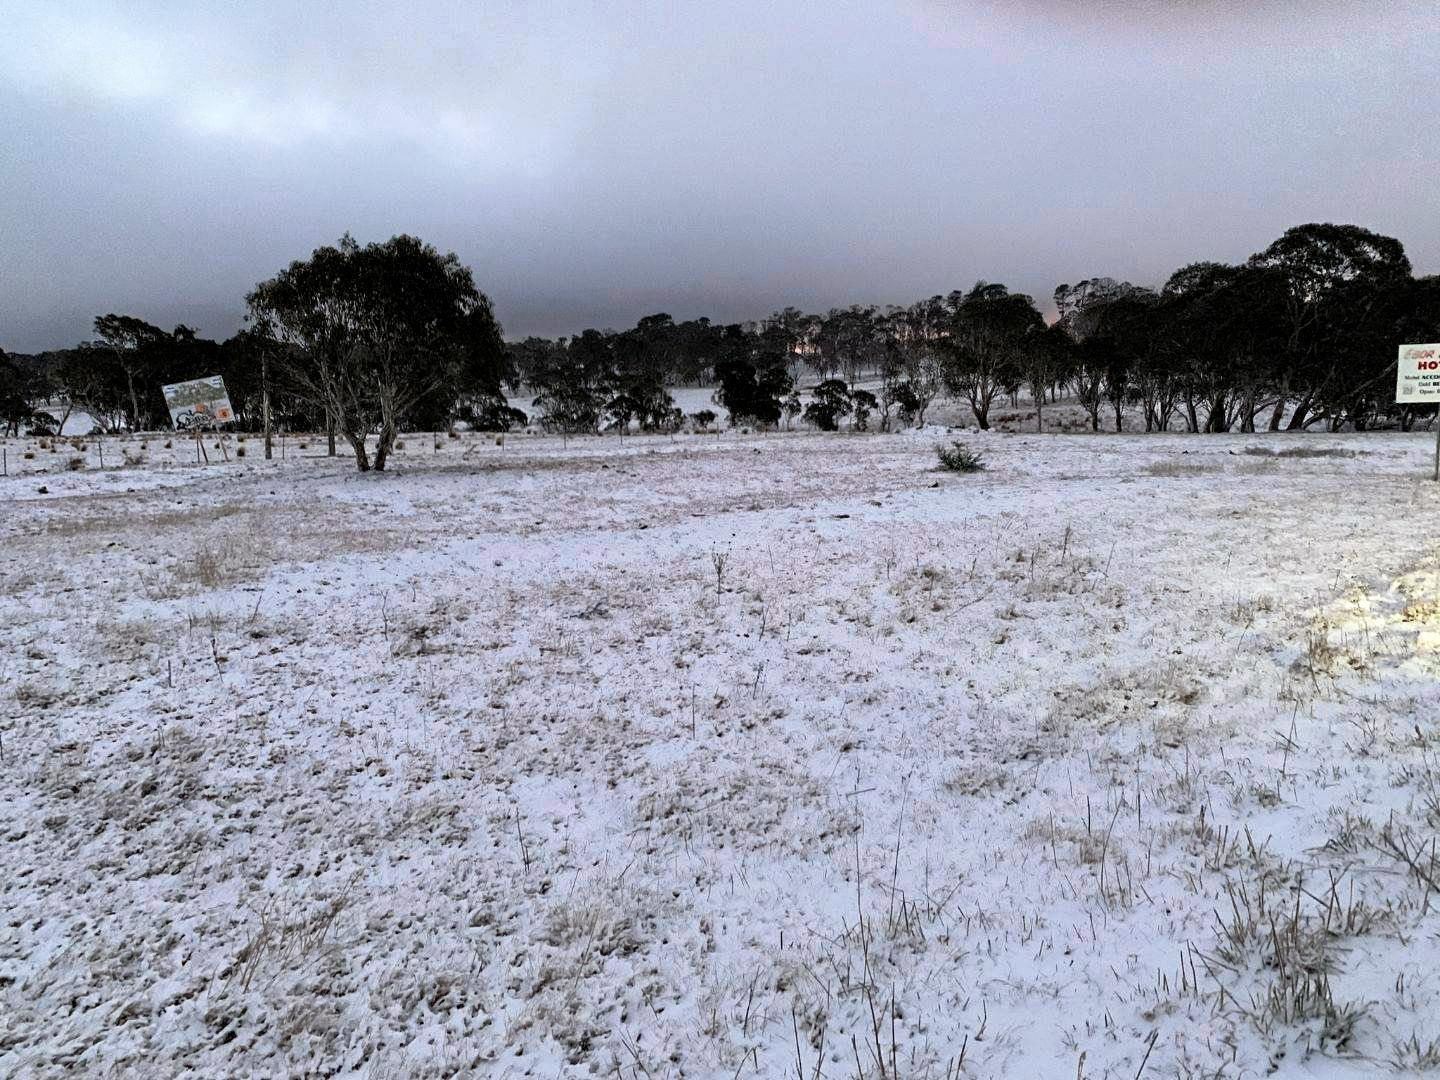 Outskirts of Ebor Village (alt. 1350m) on Monday morning. Residents and travellers were greeted by a winter wonderland up on the Tablelands over the weekend.